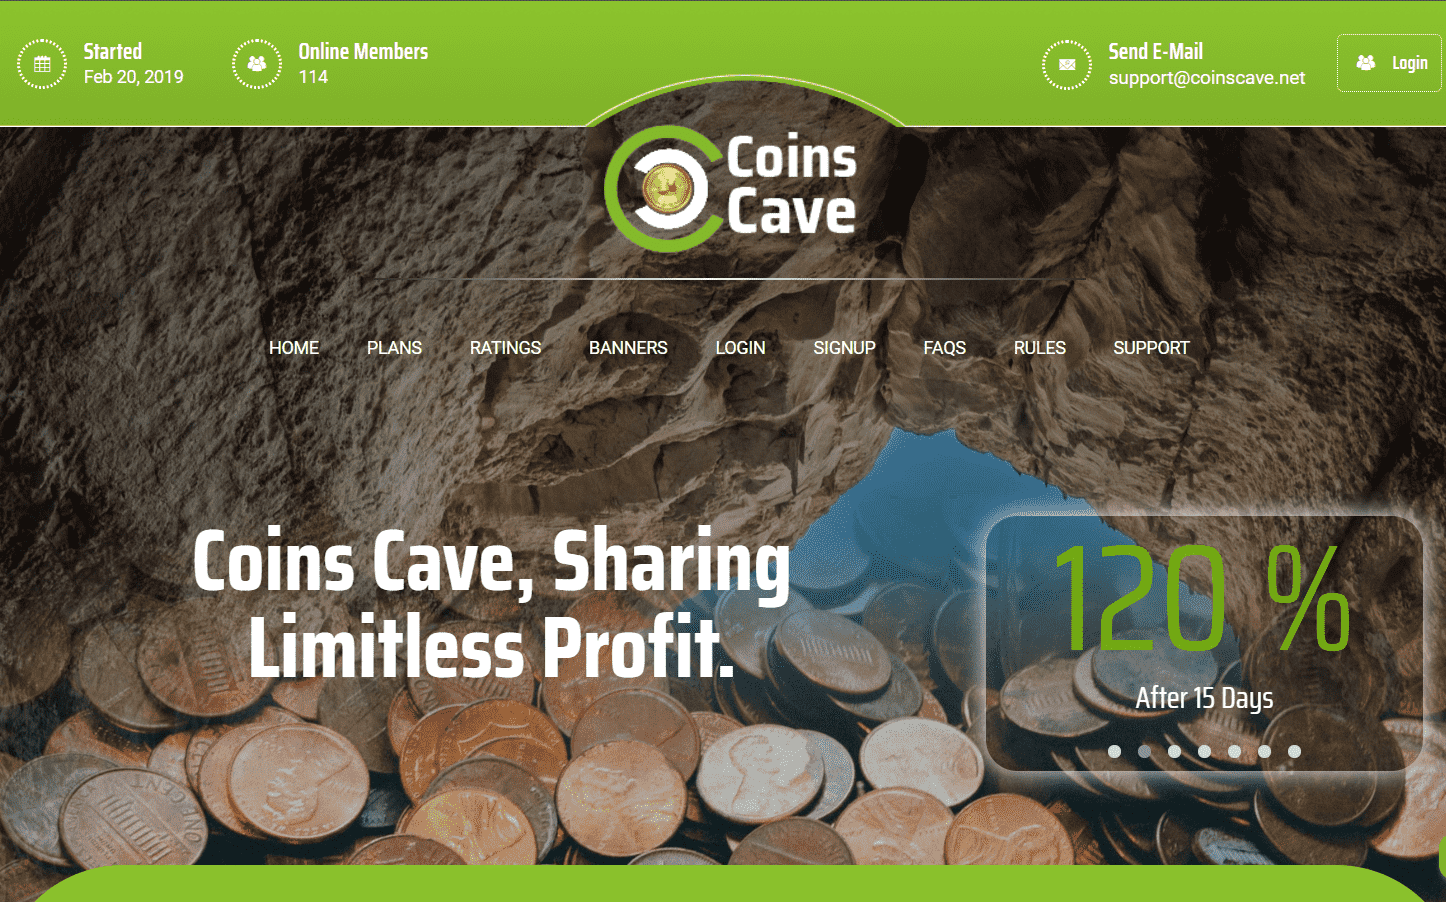 Coins Cave